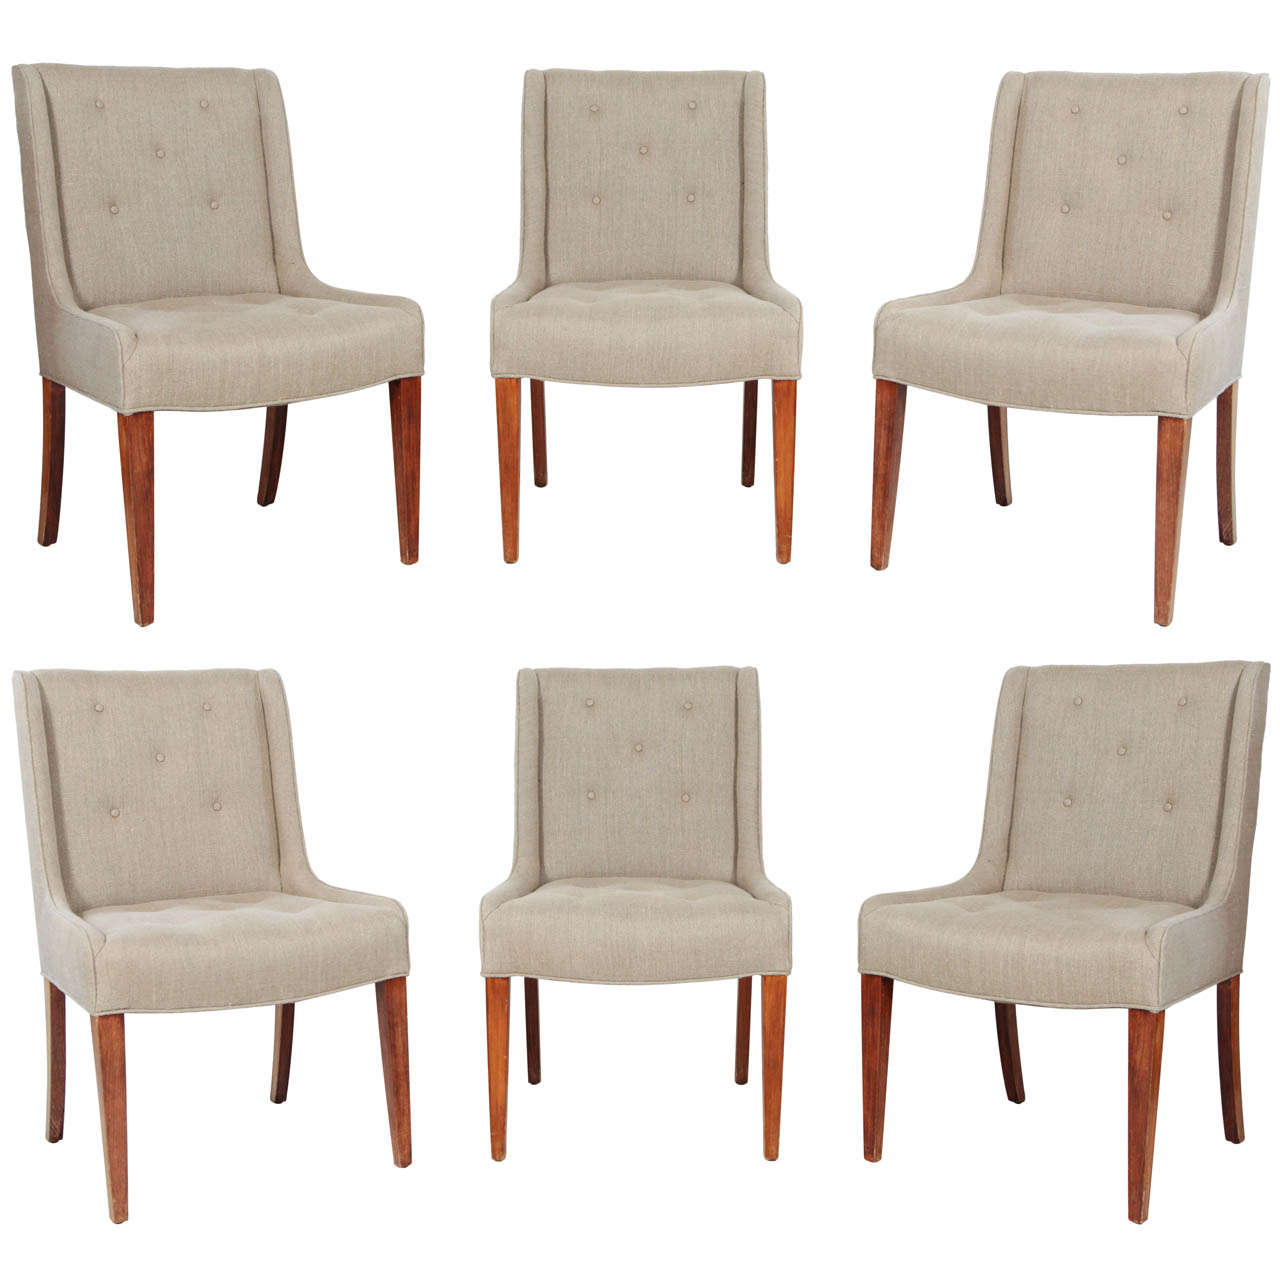 Set of six tufted dining chairs in hemp linen at 1stdibs - Tufted dining room chairs ...